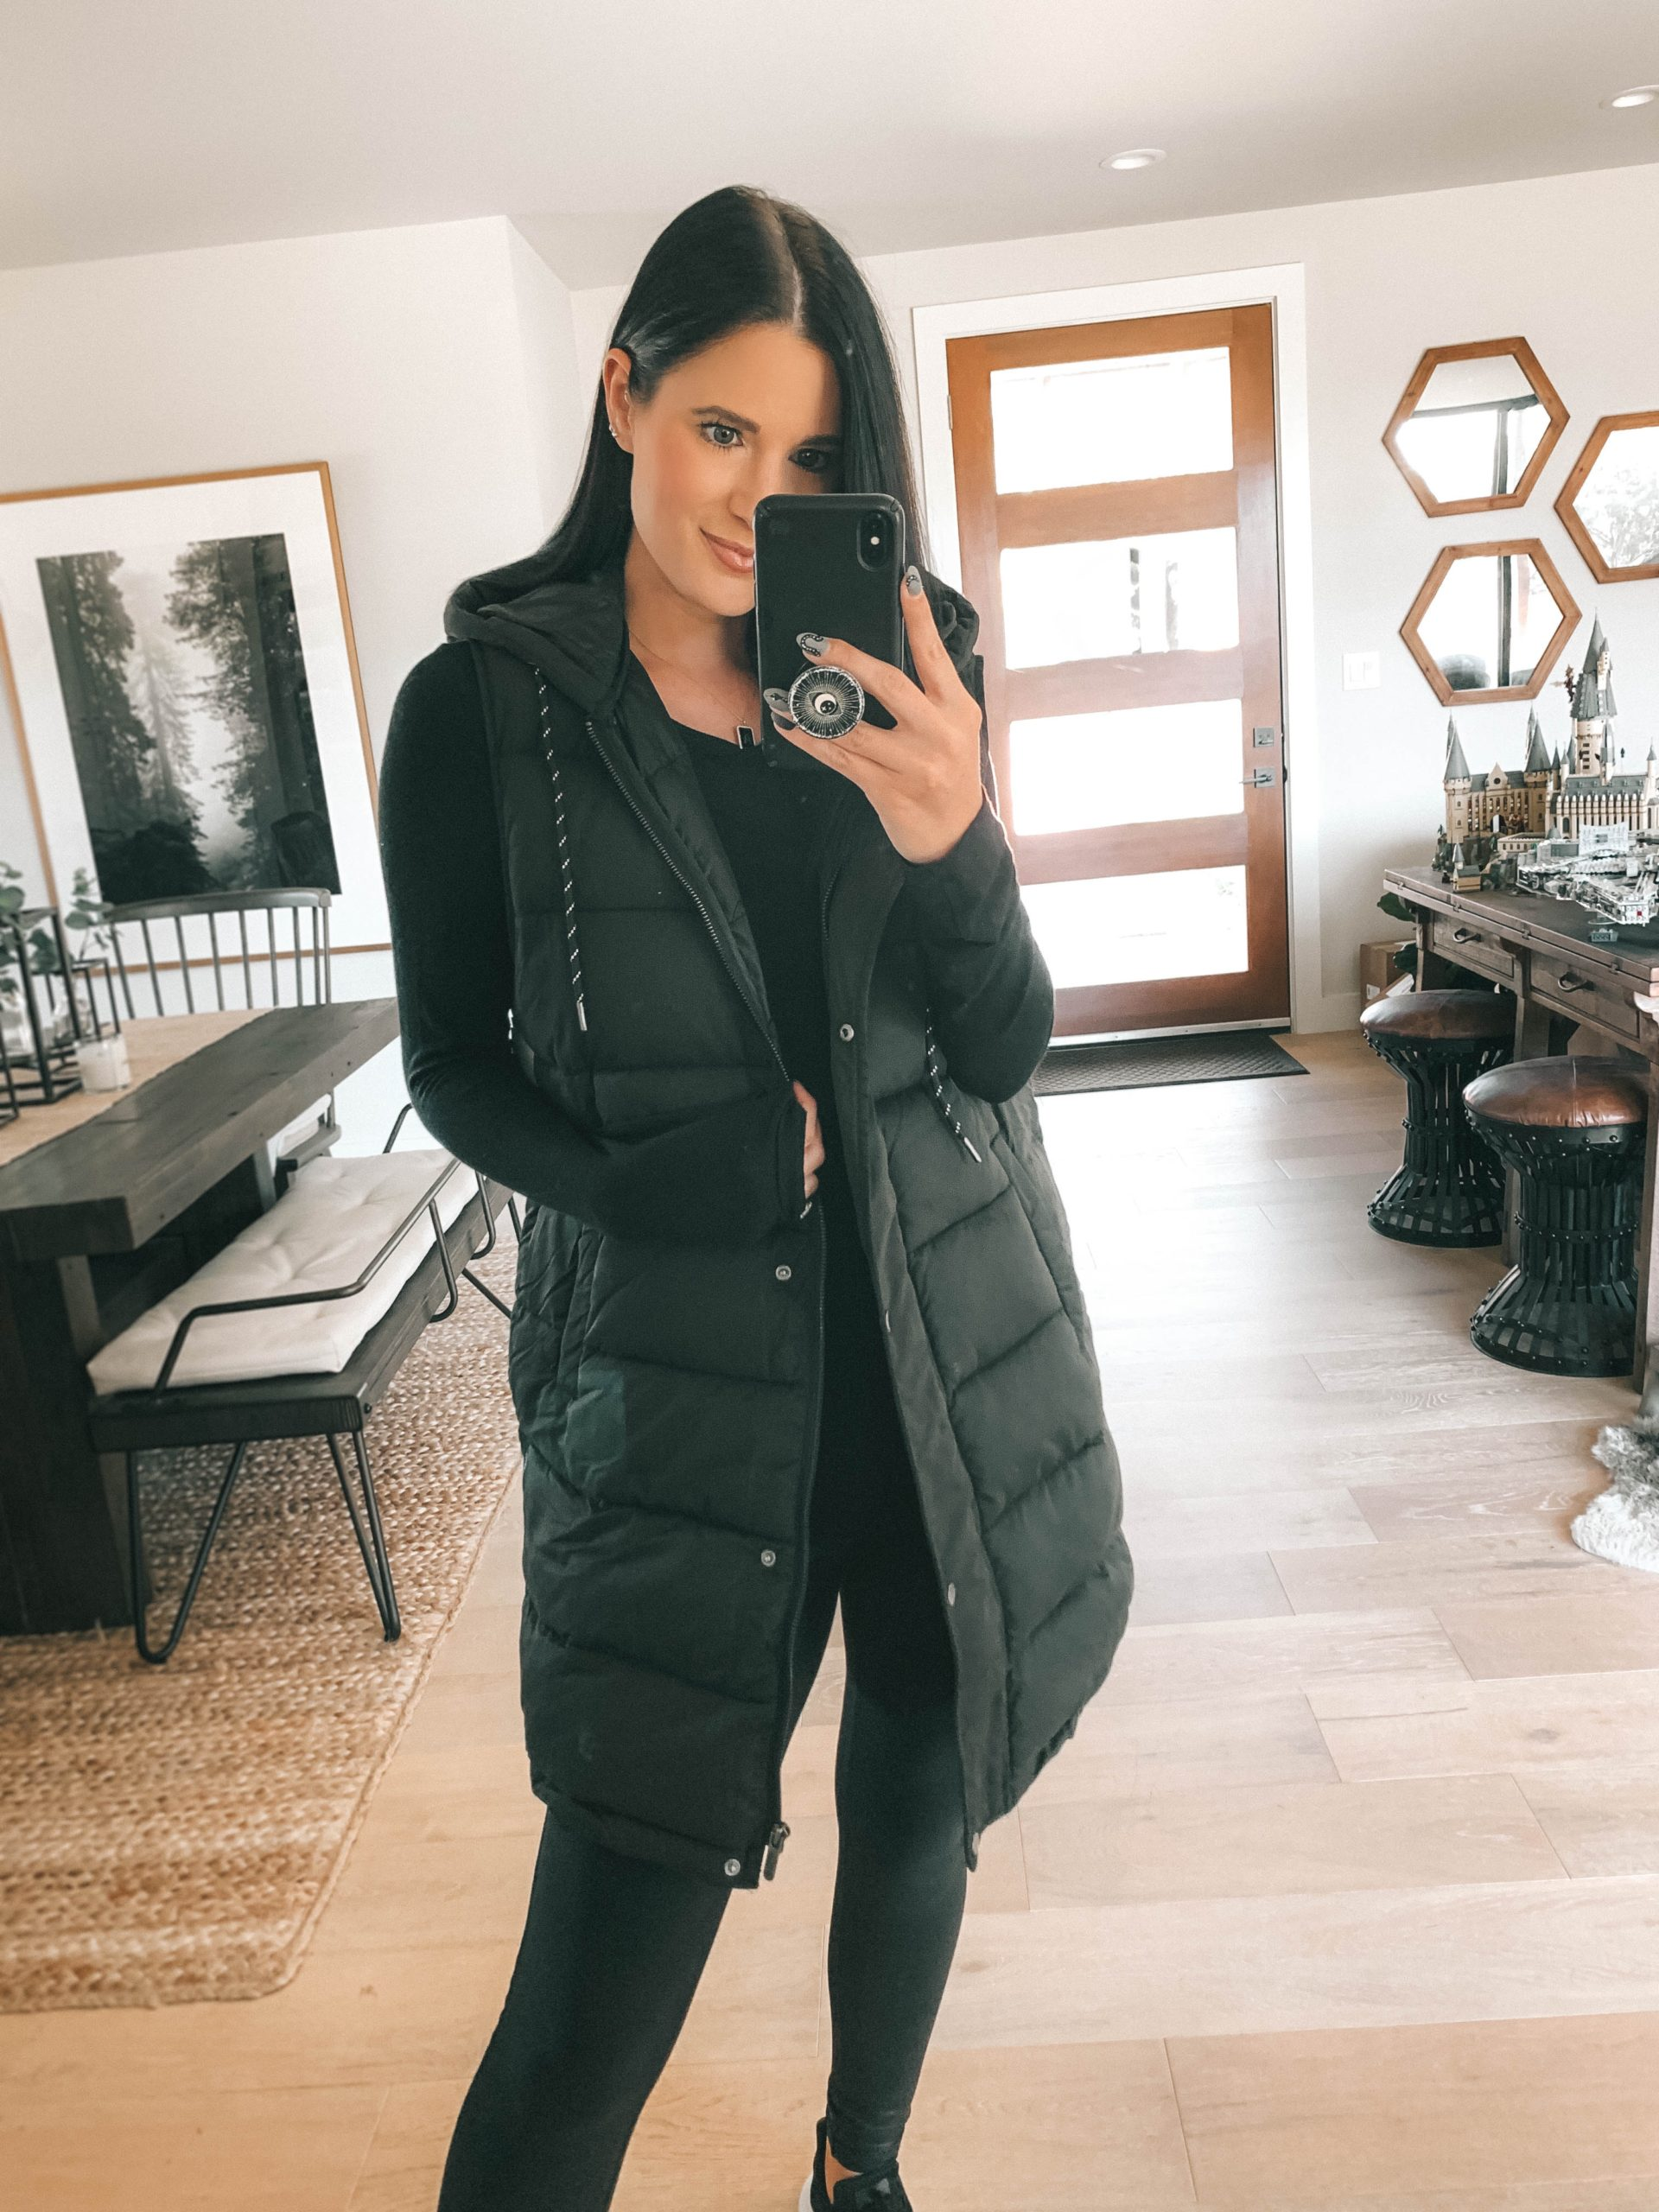 Nordstrom Anniversary Sale by popular Austin fashion blog, Dressed to Kill: image of a woman wearing Nordstrom Faux Leather Leggings SPANX, Nordstrom Layering Tee CHELSEA28, and Nordstrom Long Hooded Puffer Vest ZELLA.